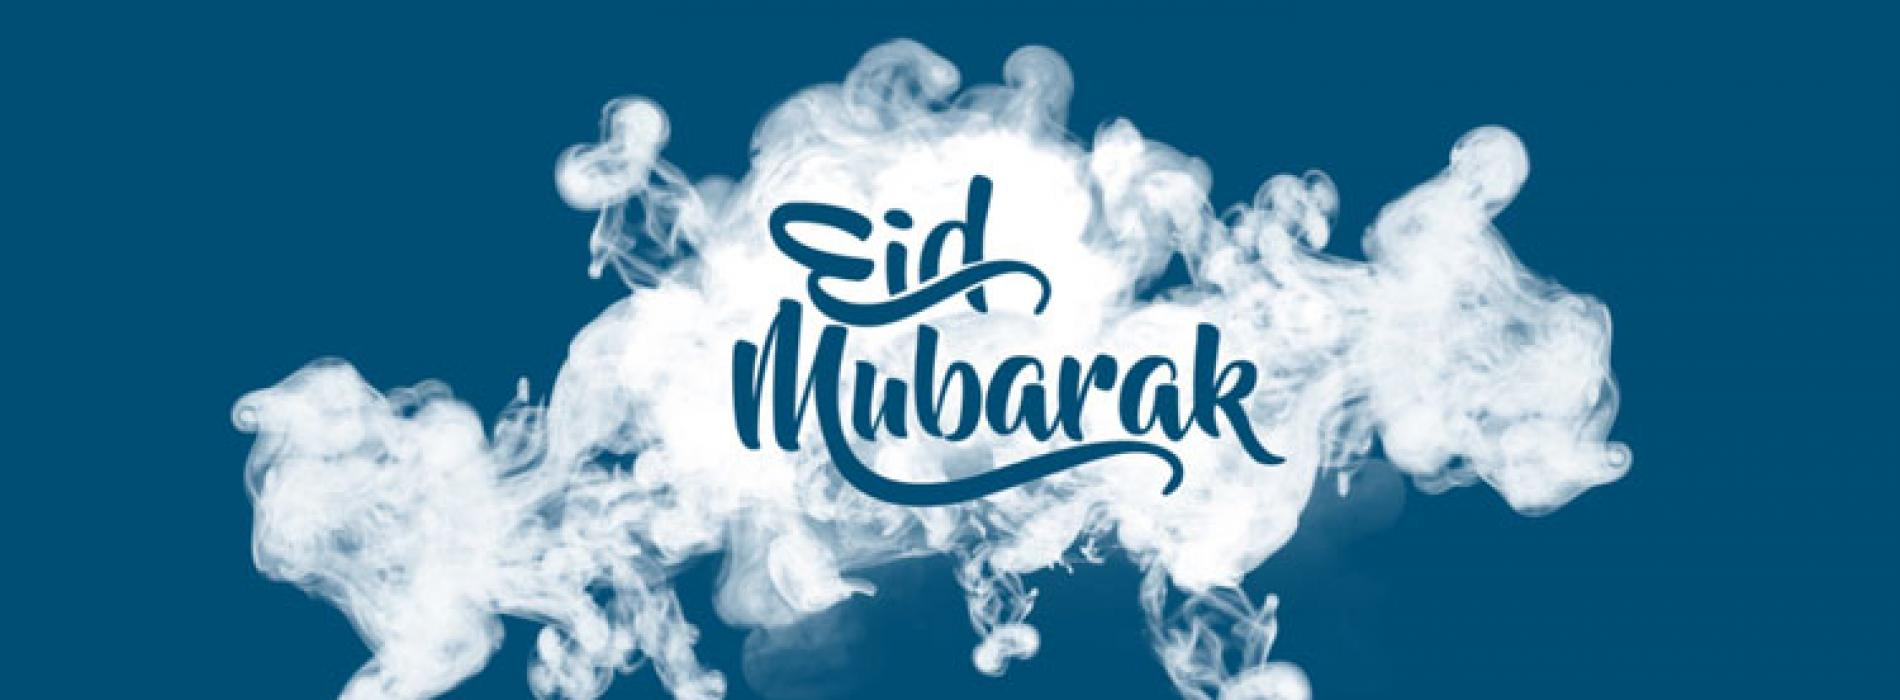 Eid Greets From Us To You!